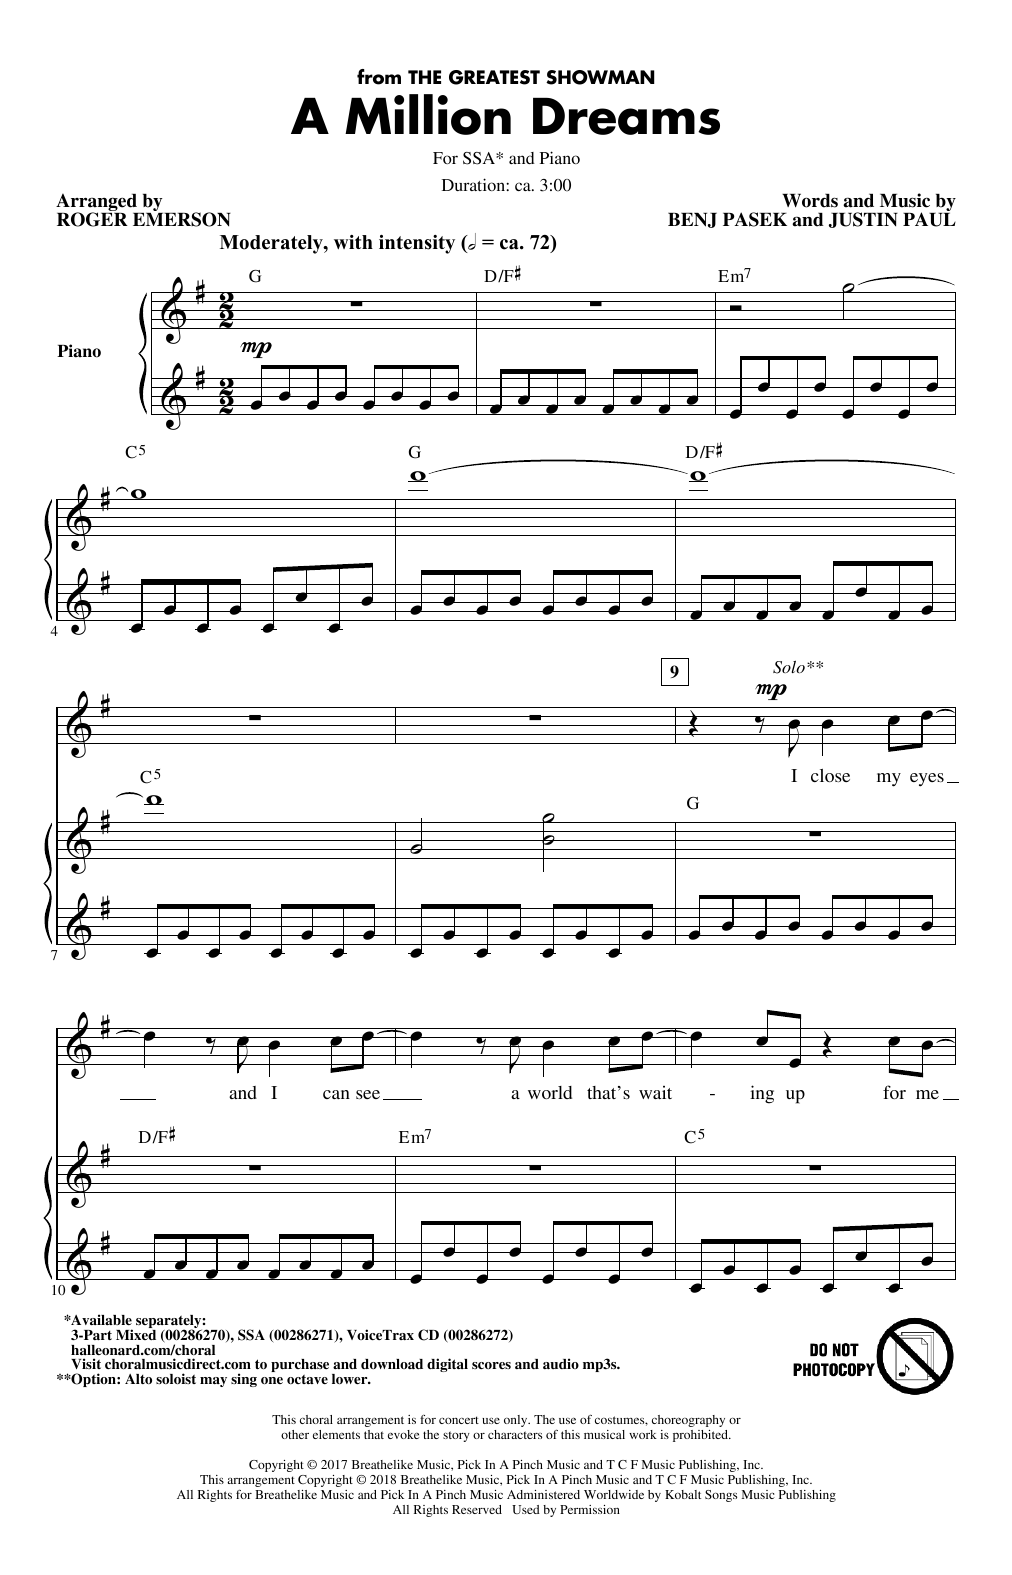 Pasek Paul A Million Dreams From The Greatest Showman Arr Roger Emerson Sheet Music Pdf Notes Chords Film Tv Score 3 Part Mixed Choir Download Printable Sku 407166